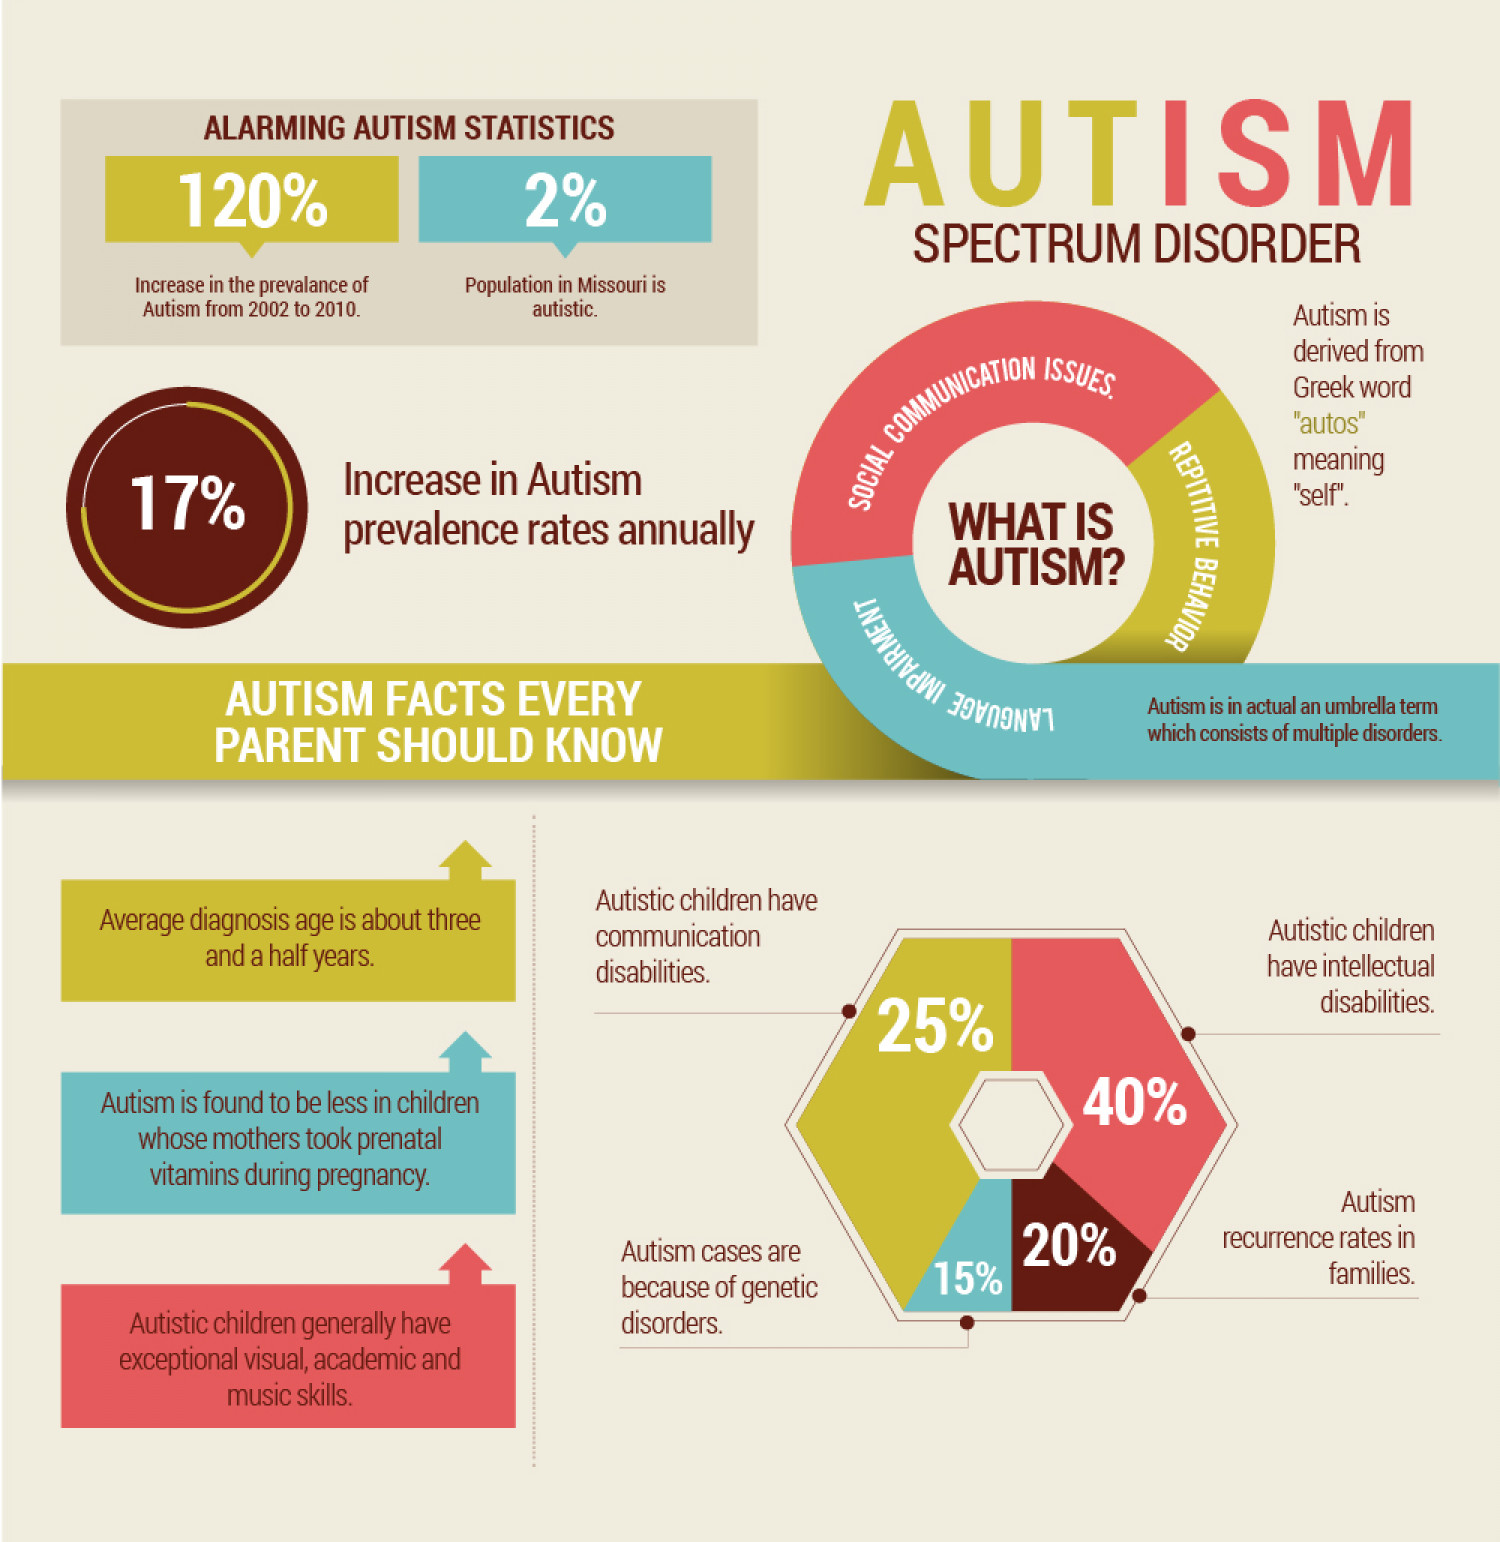 Unique What is Autism Spectrum Disorder Images